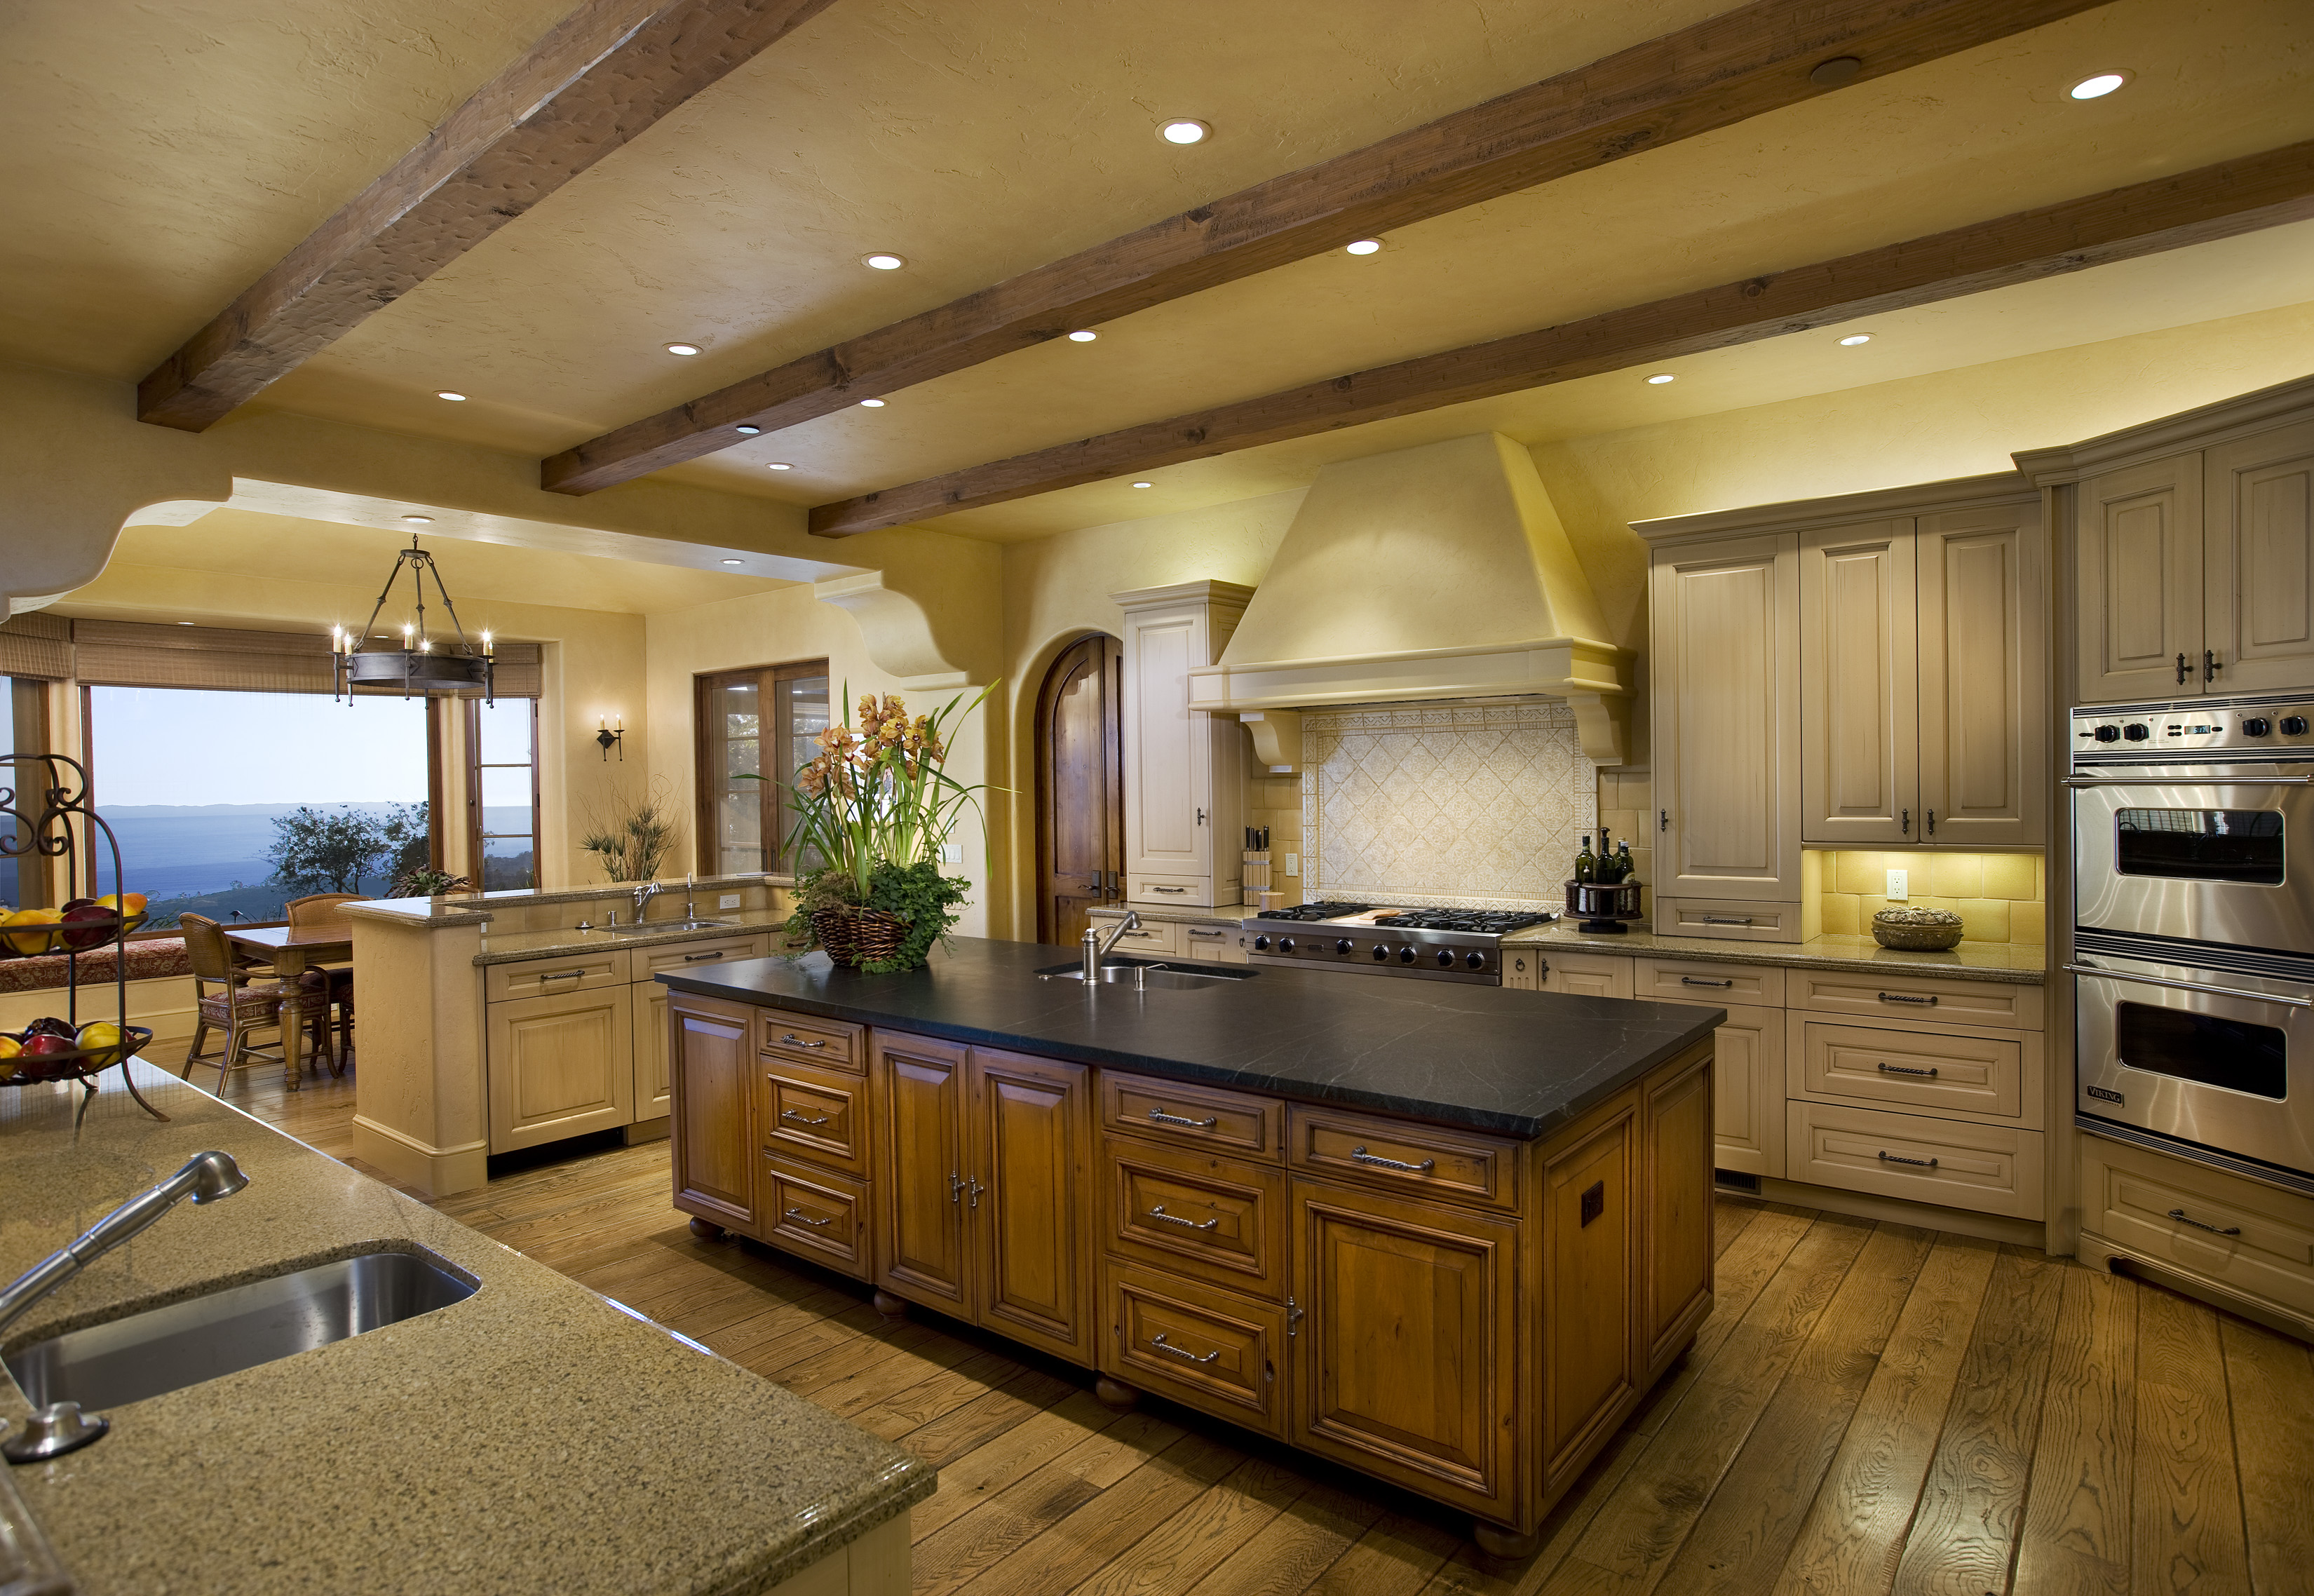 beautiful kitchen cabinets self sharpening knife kitchens eat your heart out part one